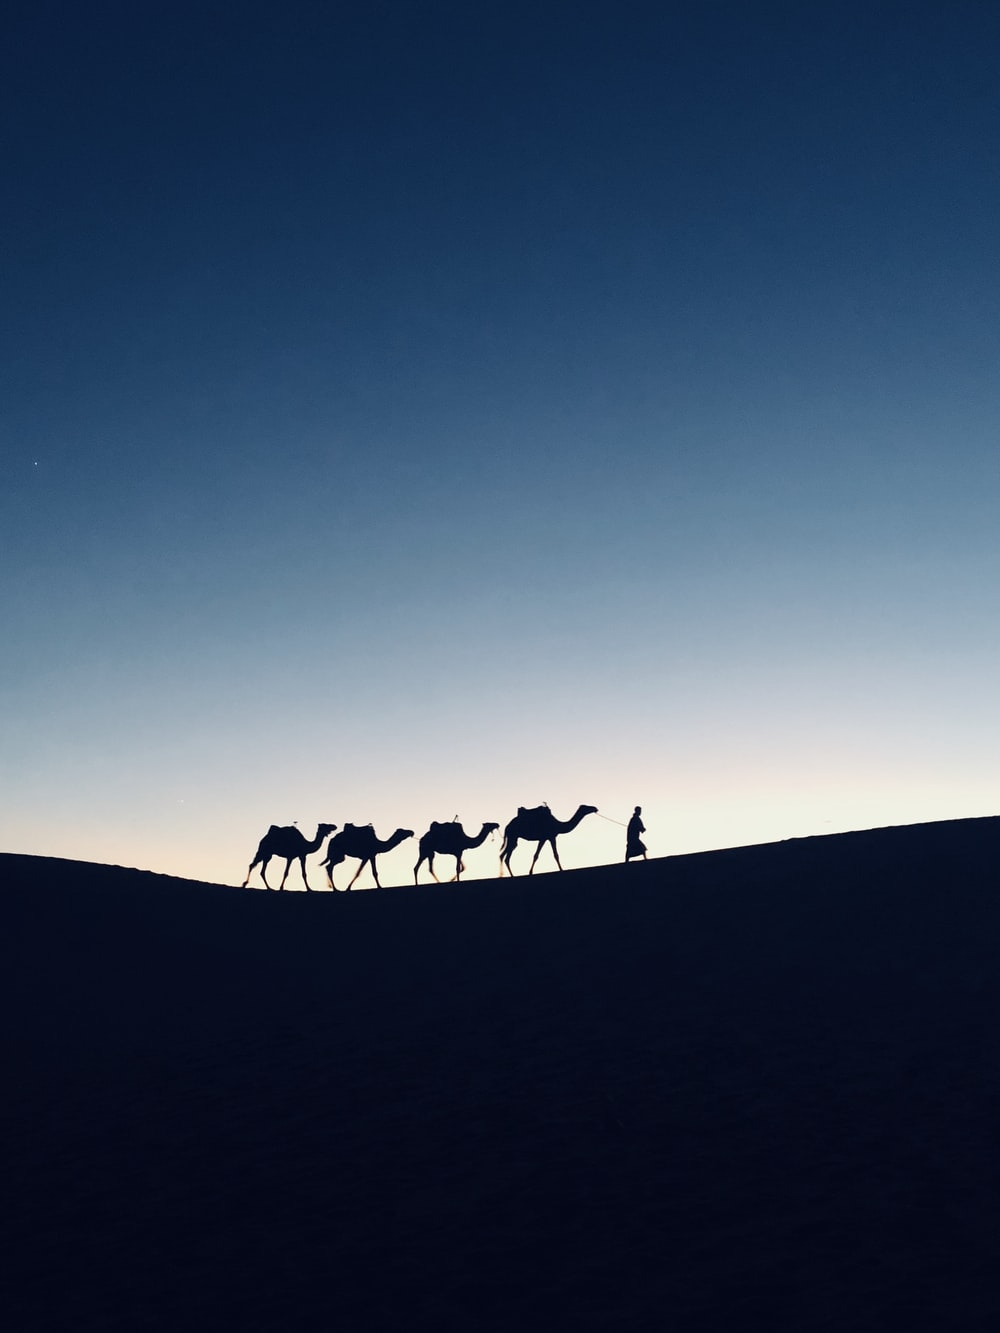 silhouette photography of four camels